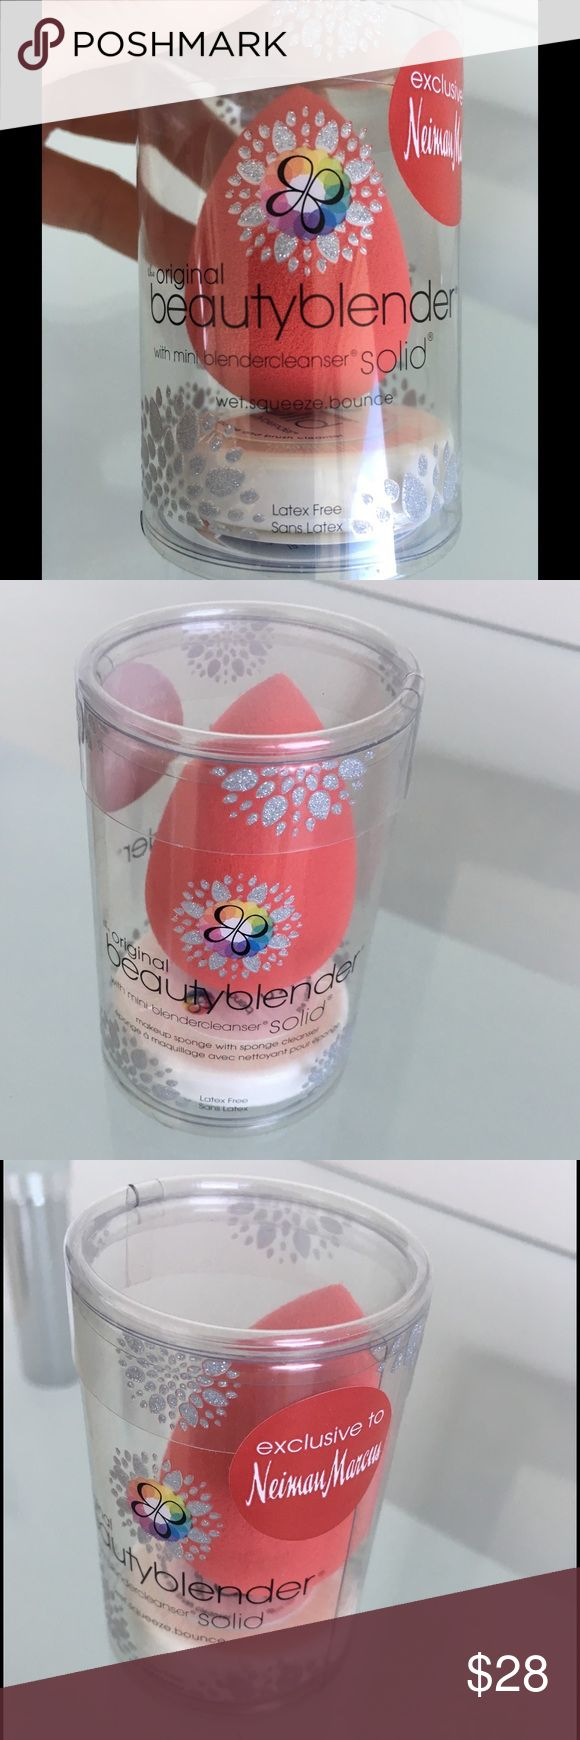 Selling this Beauty Blender & Cleanser (Limited Edition Color) on Poshmark! My username is: dolceluxe. #shopmycloset #poshmark #fashion #shopping #style #forsale #Beauty Blender #Other